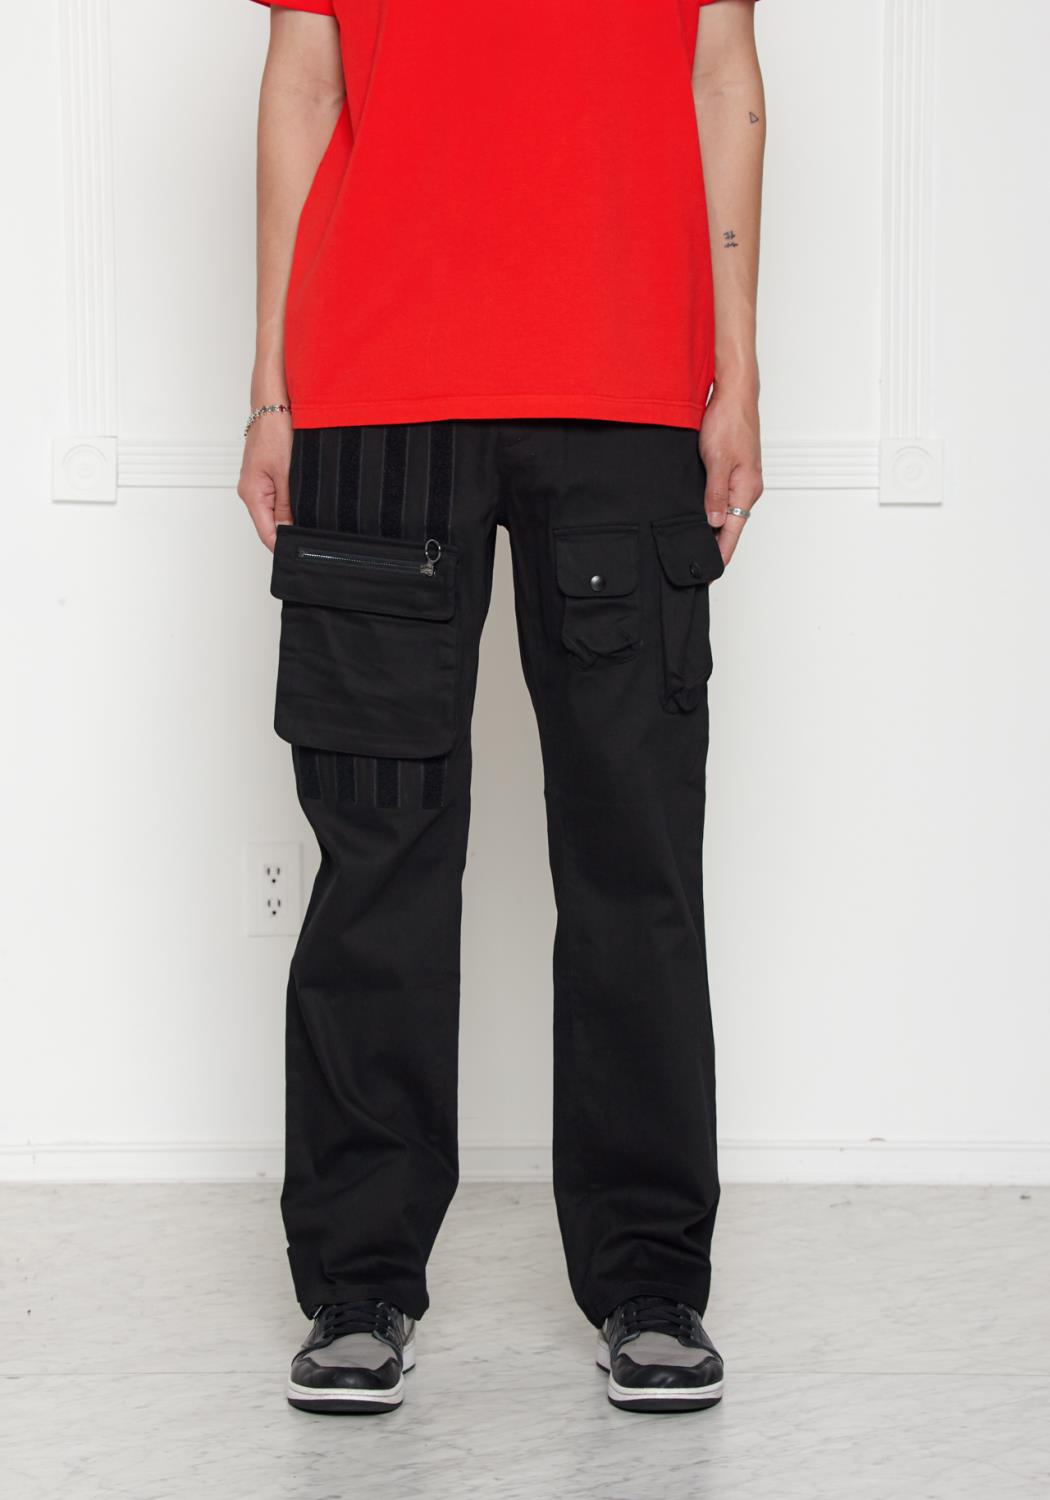 Konus Twill Chino Pants with Removable Cargo Pocket